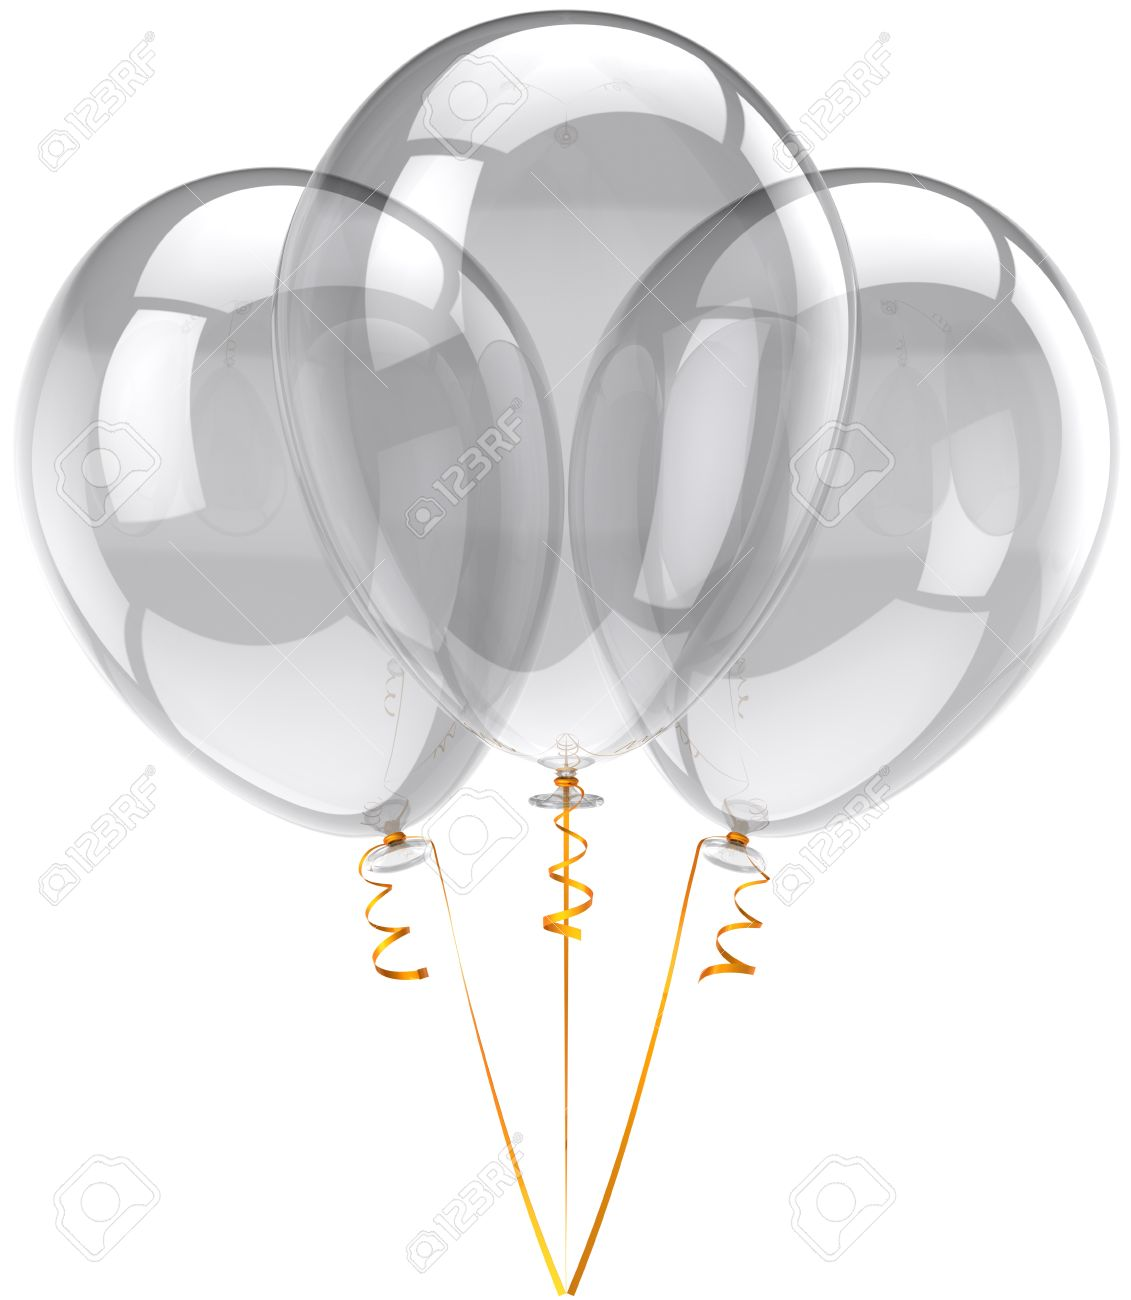 Party balloons three translucent white. Beautiful colorless birthday festival decoration. Joyful happiness holiday emotions concept. Detailed three-dimensional render 3d. Isolated on white background Stock Photo - 9099055